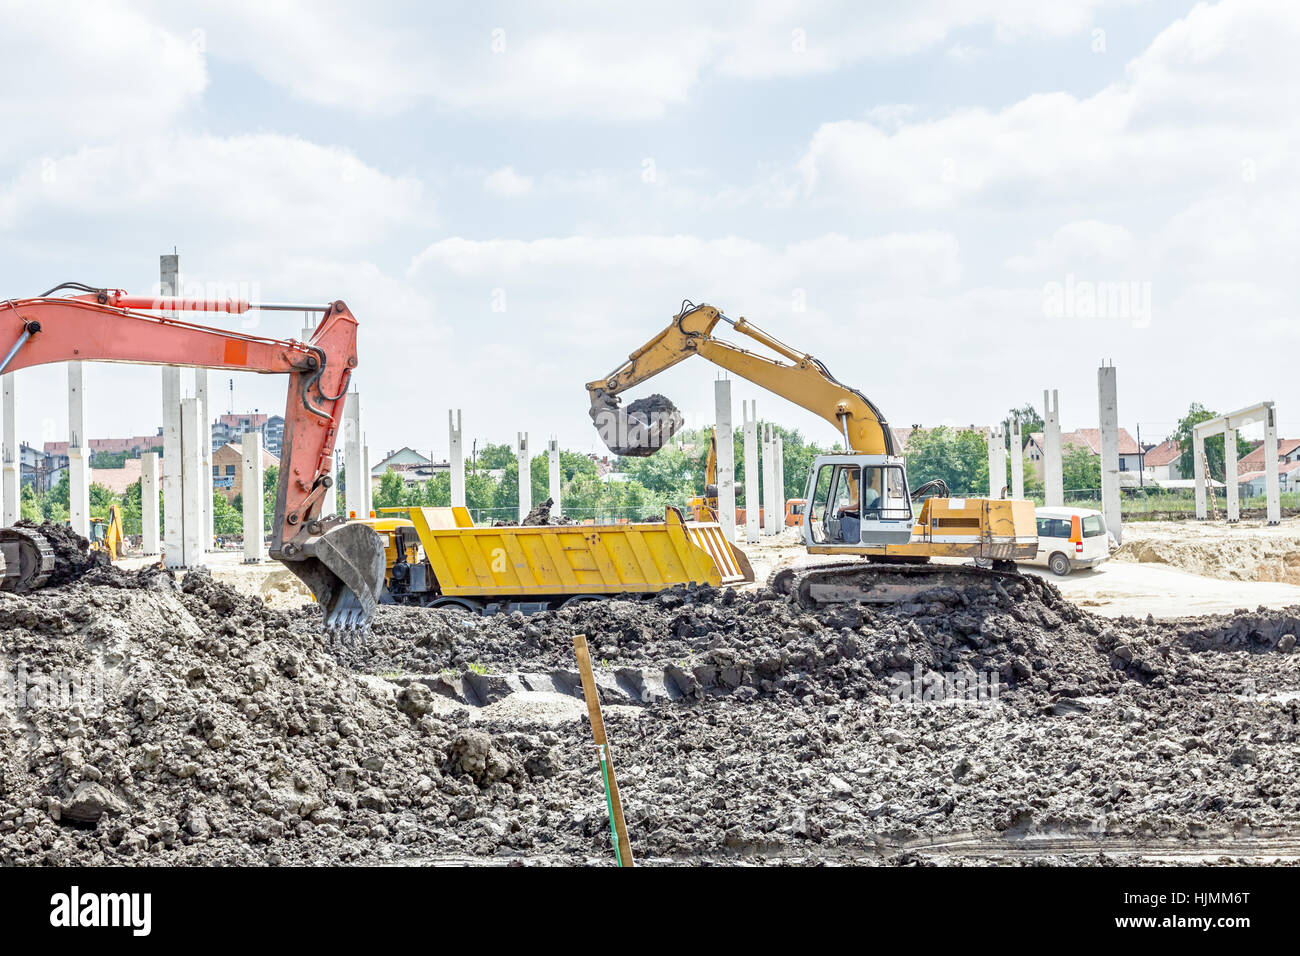 big excavator is filling a dump truck with soil at construction